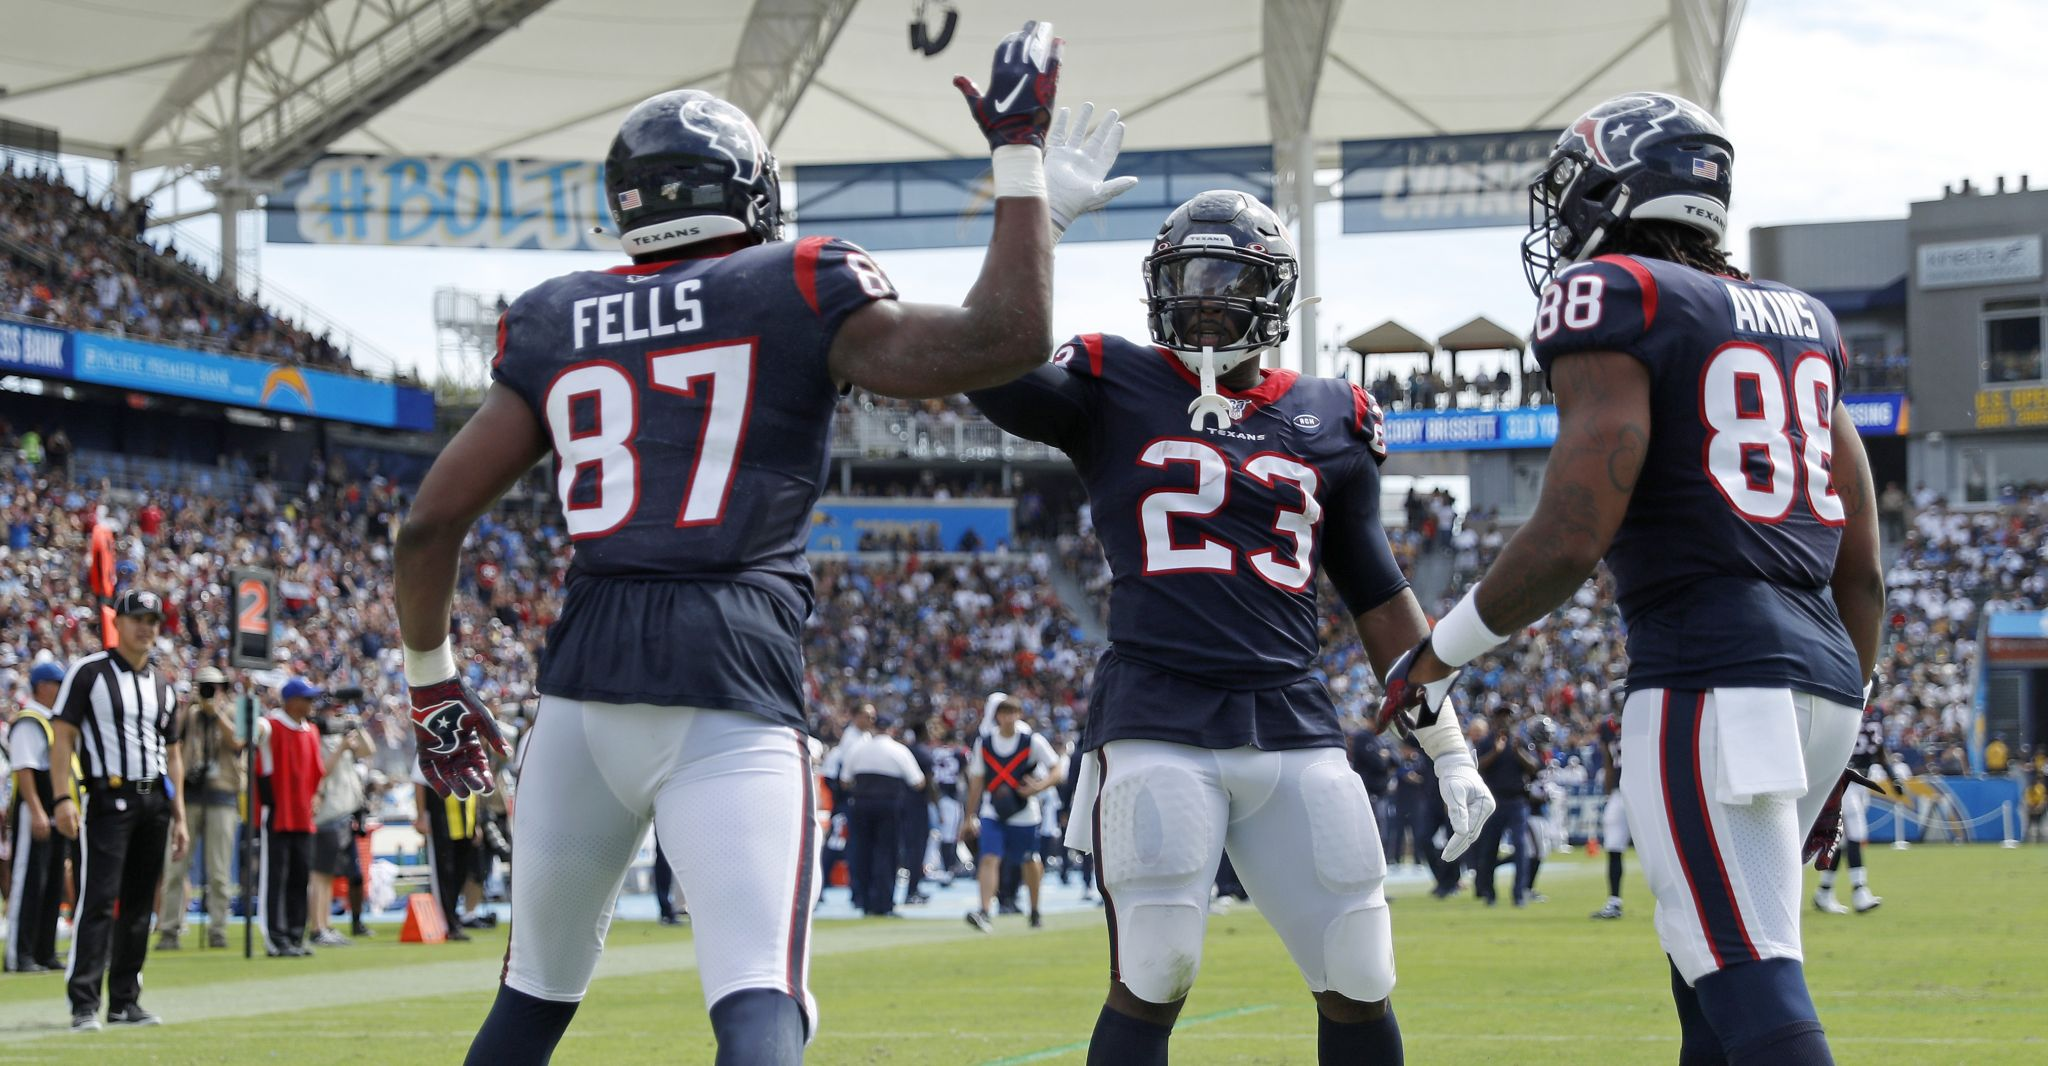 Creech: Texans' nail-biting win caps off great day for Houston sports